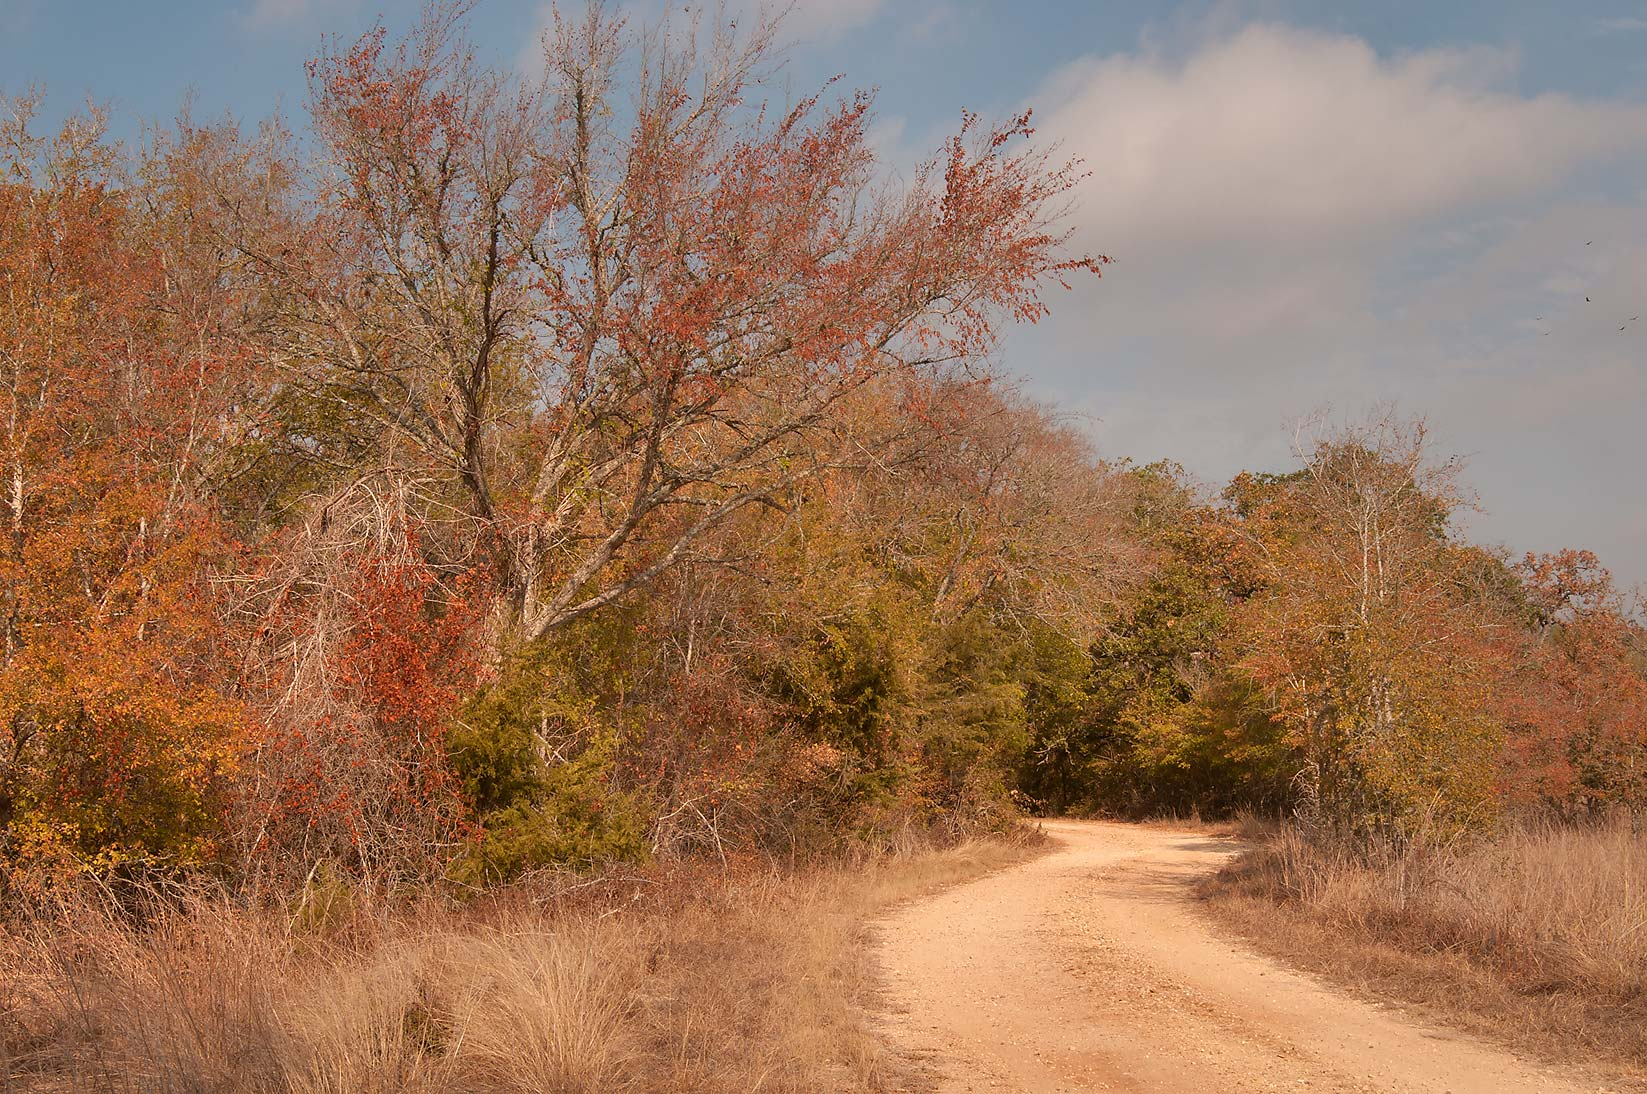 Road in Birch Creek Park near Somerville Lake. Texas